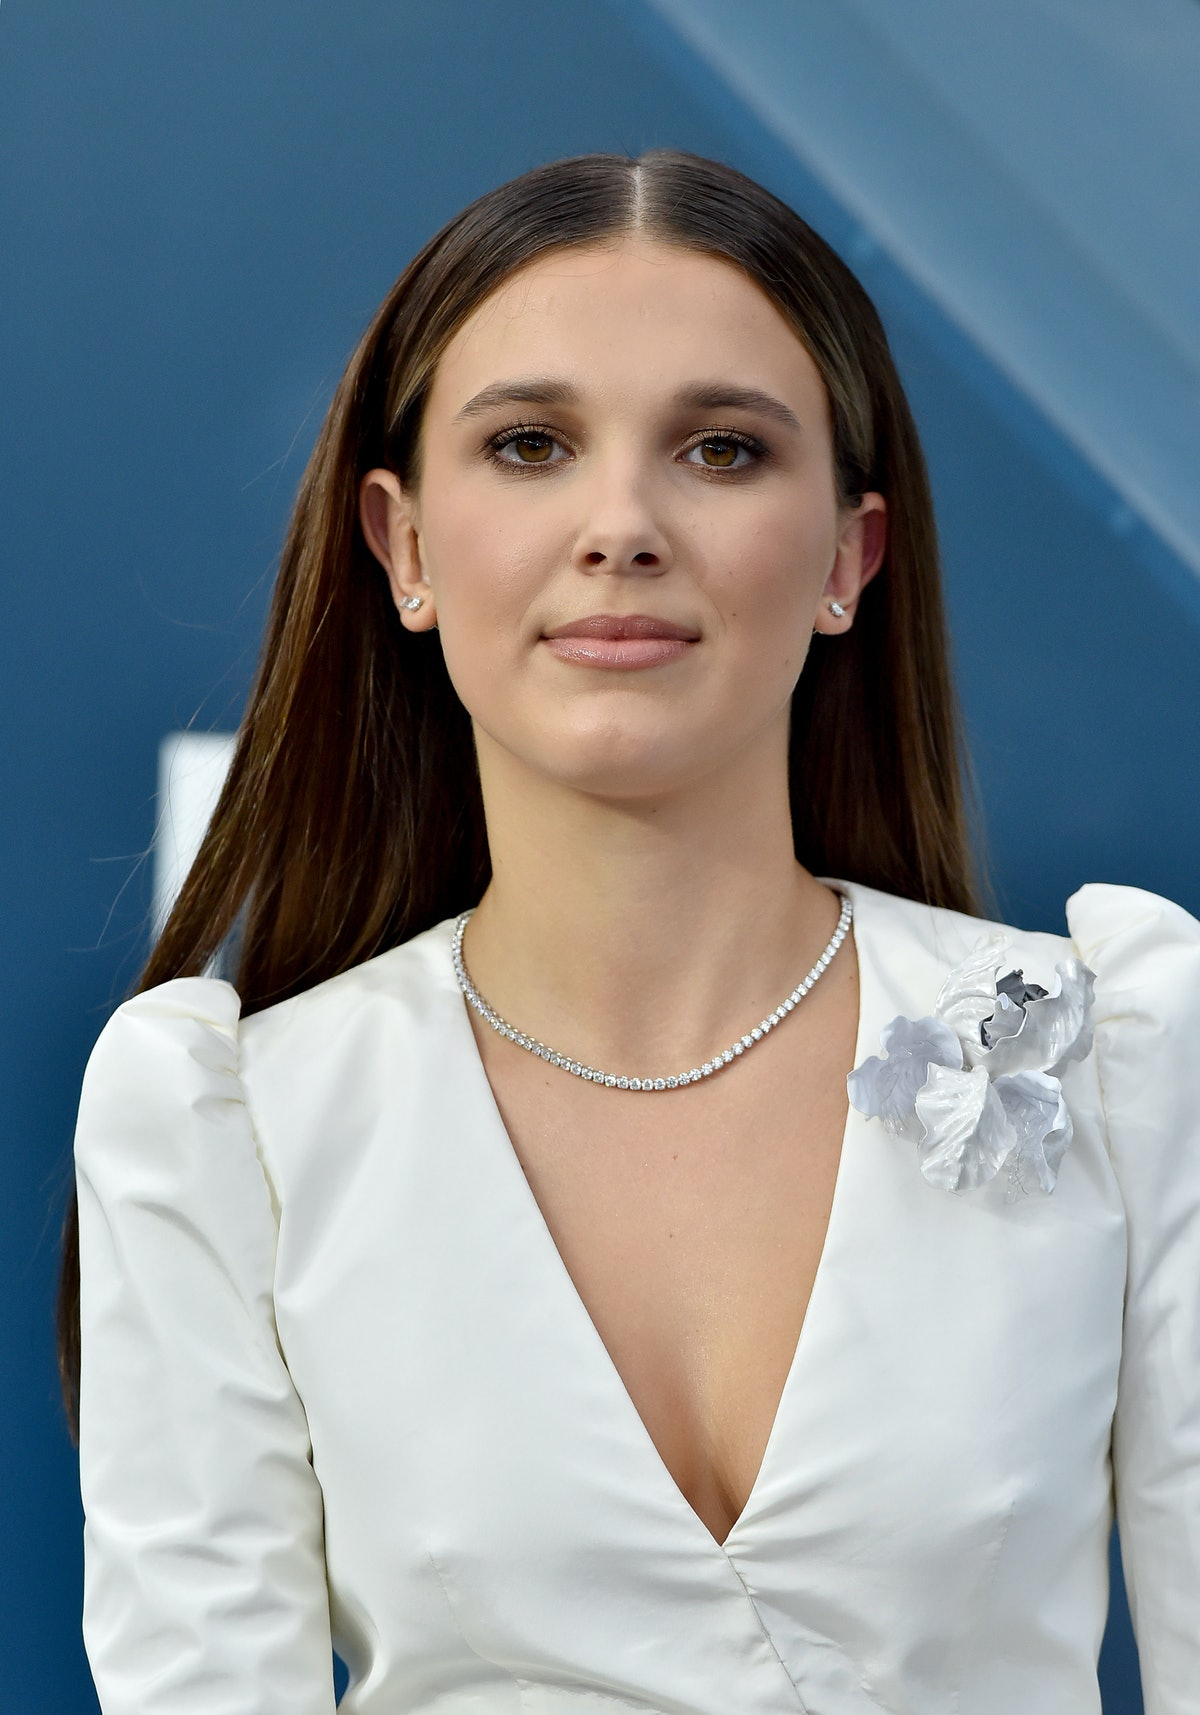 Millie Bobby Brown hits the red carpet in a white dress.